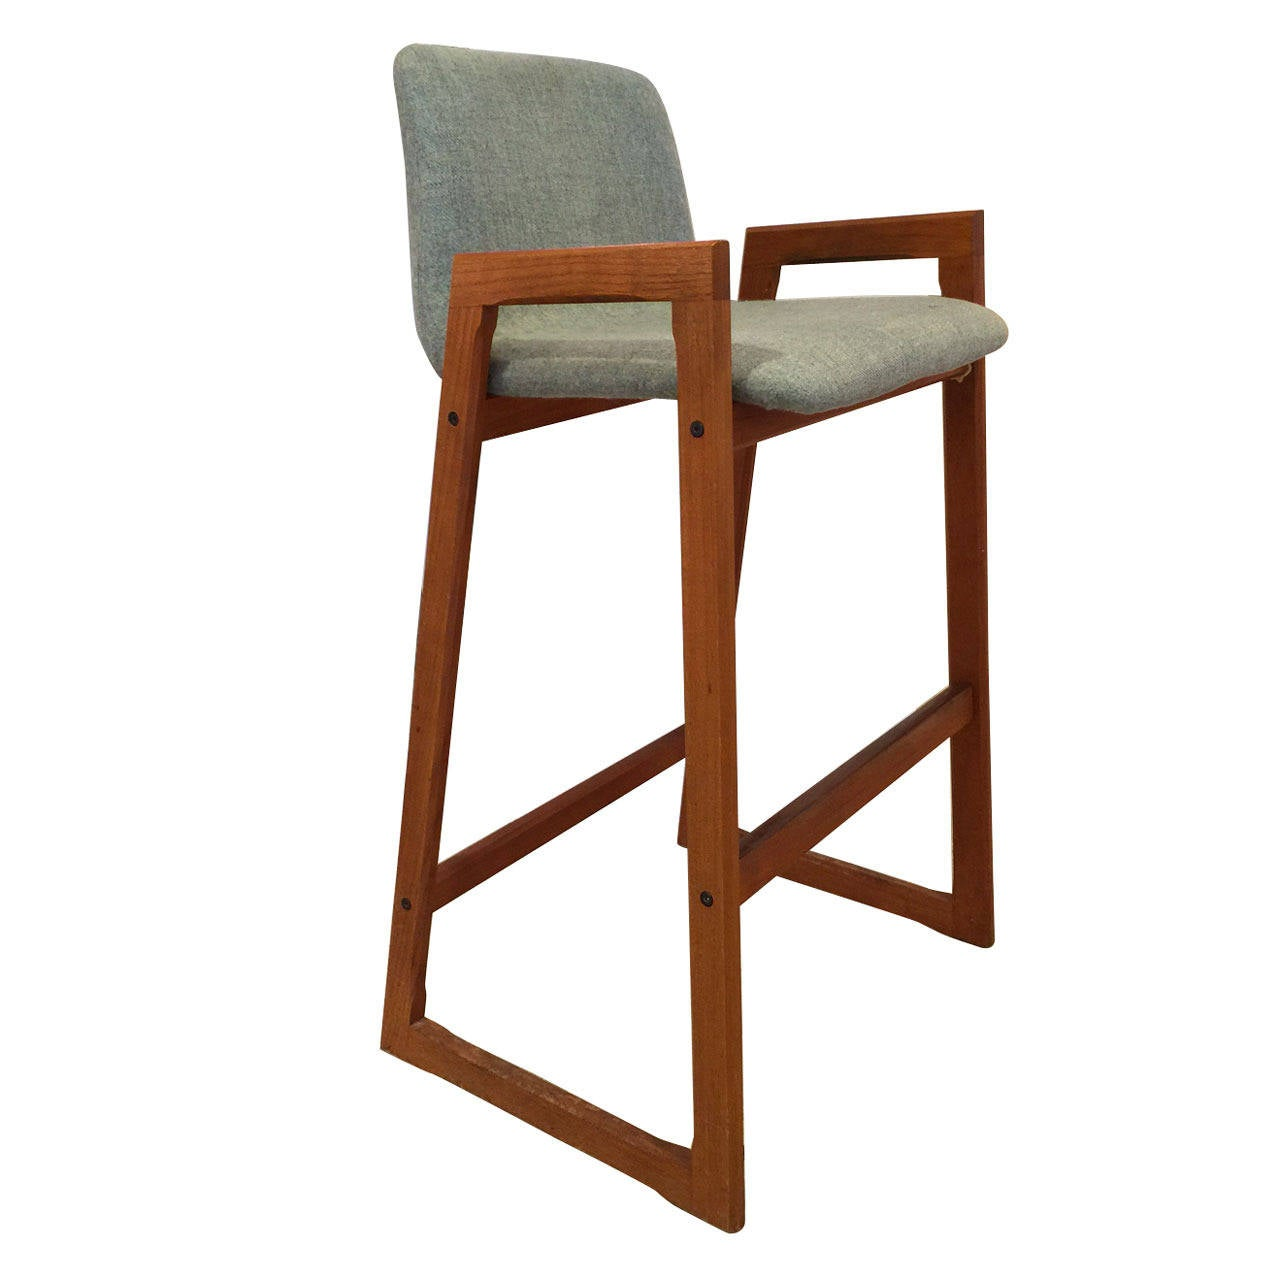 Vintage Danish Teak Bar Stool With Arms In Com 6 Available For Sale At 1stdibs